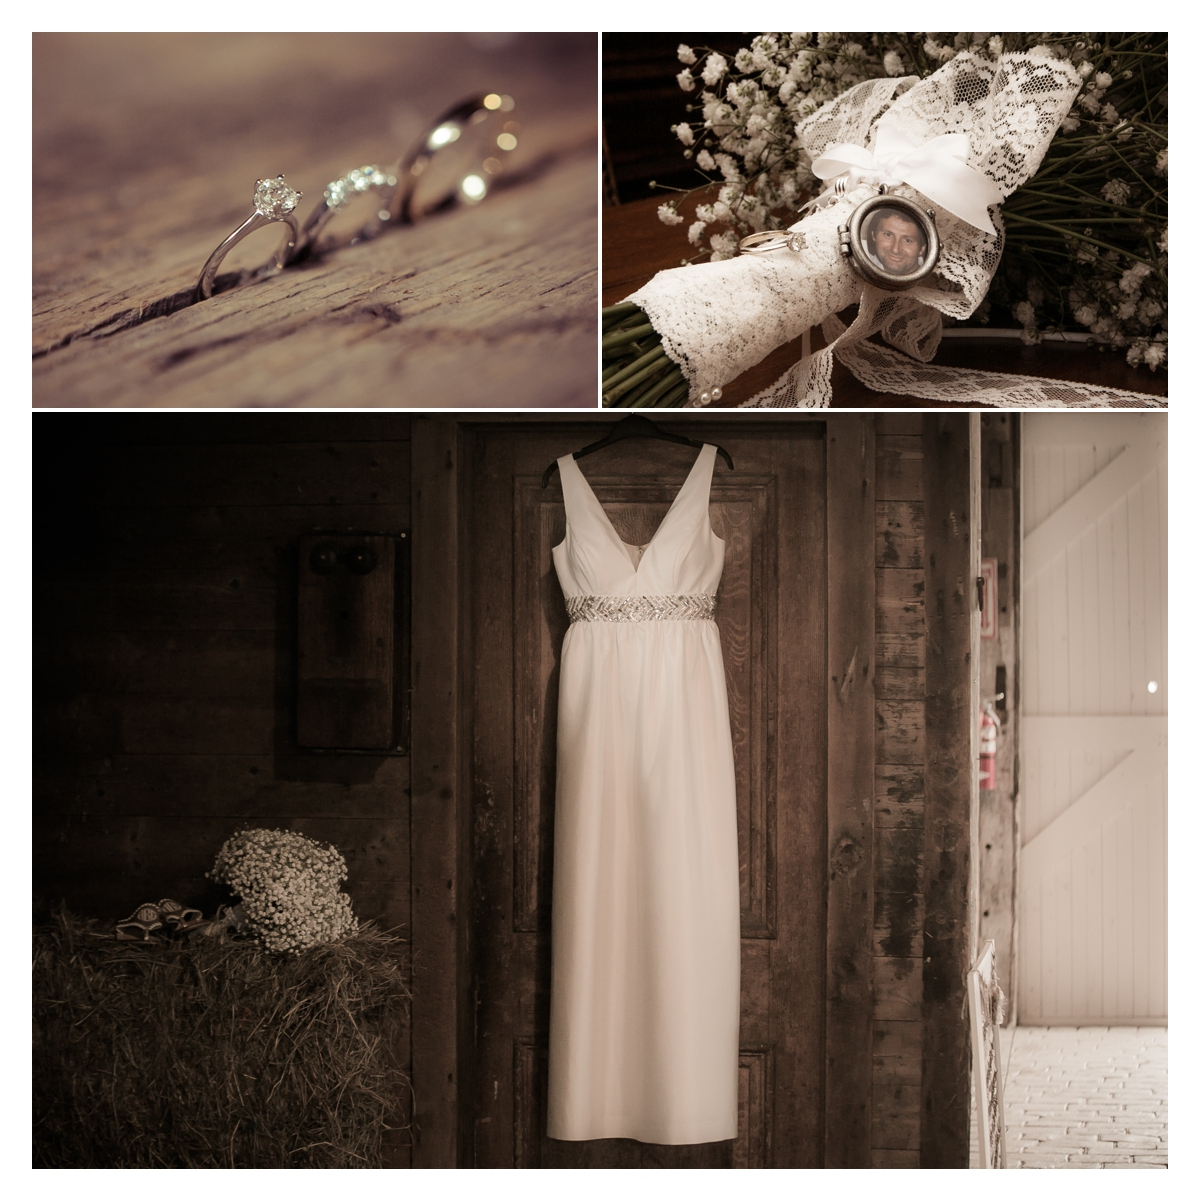 Wedding dress hanging in barn